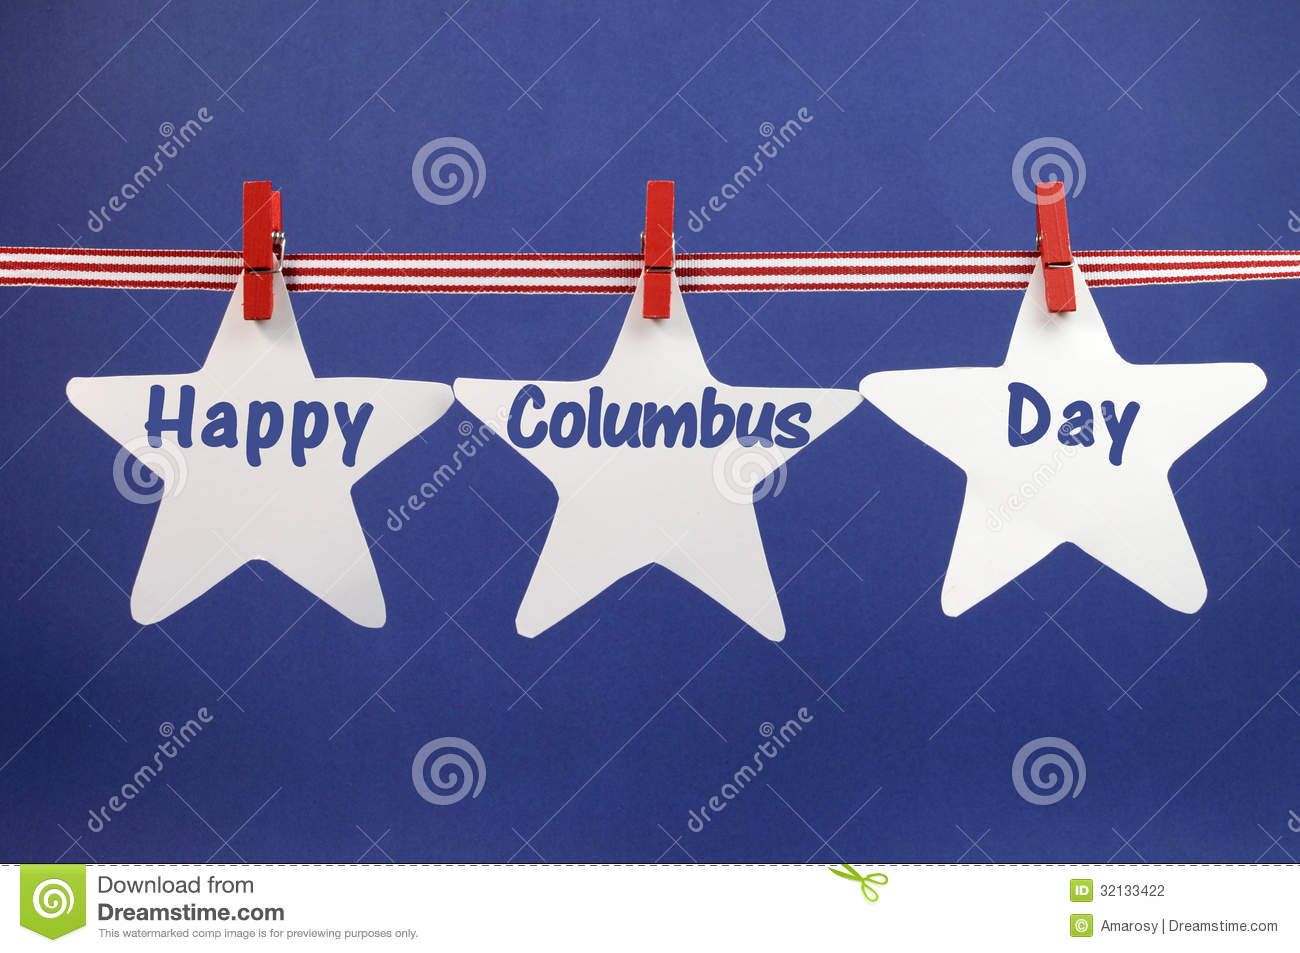 To acquire Greetings day Columbus pictures picture trends